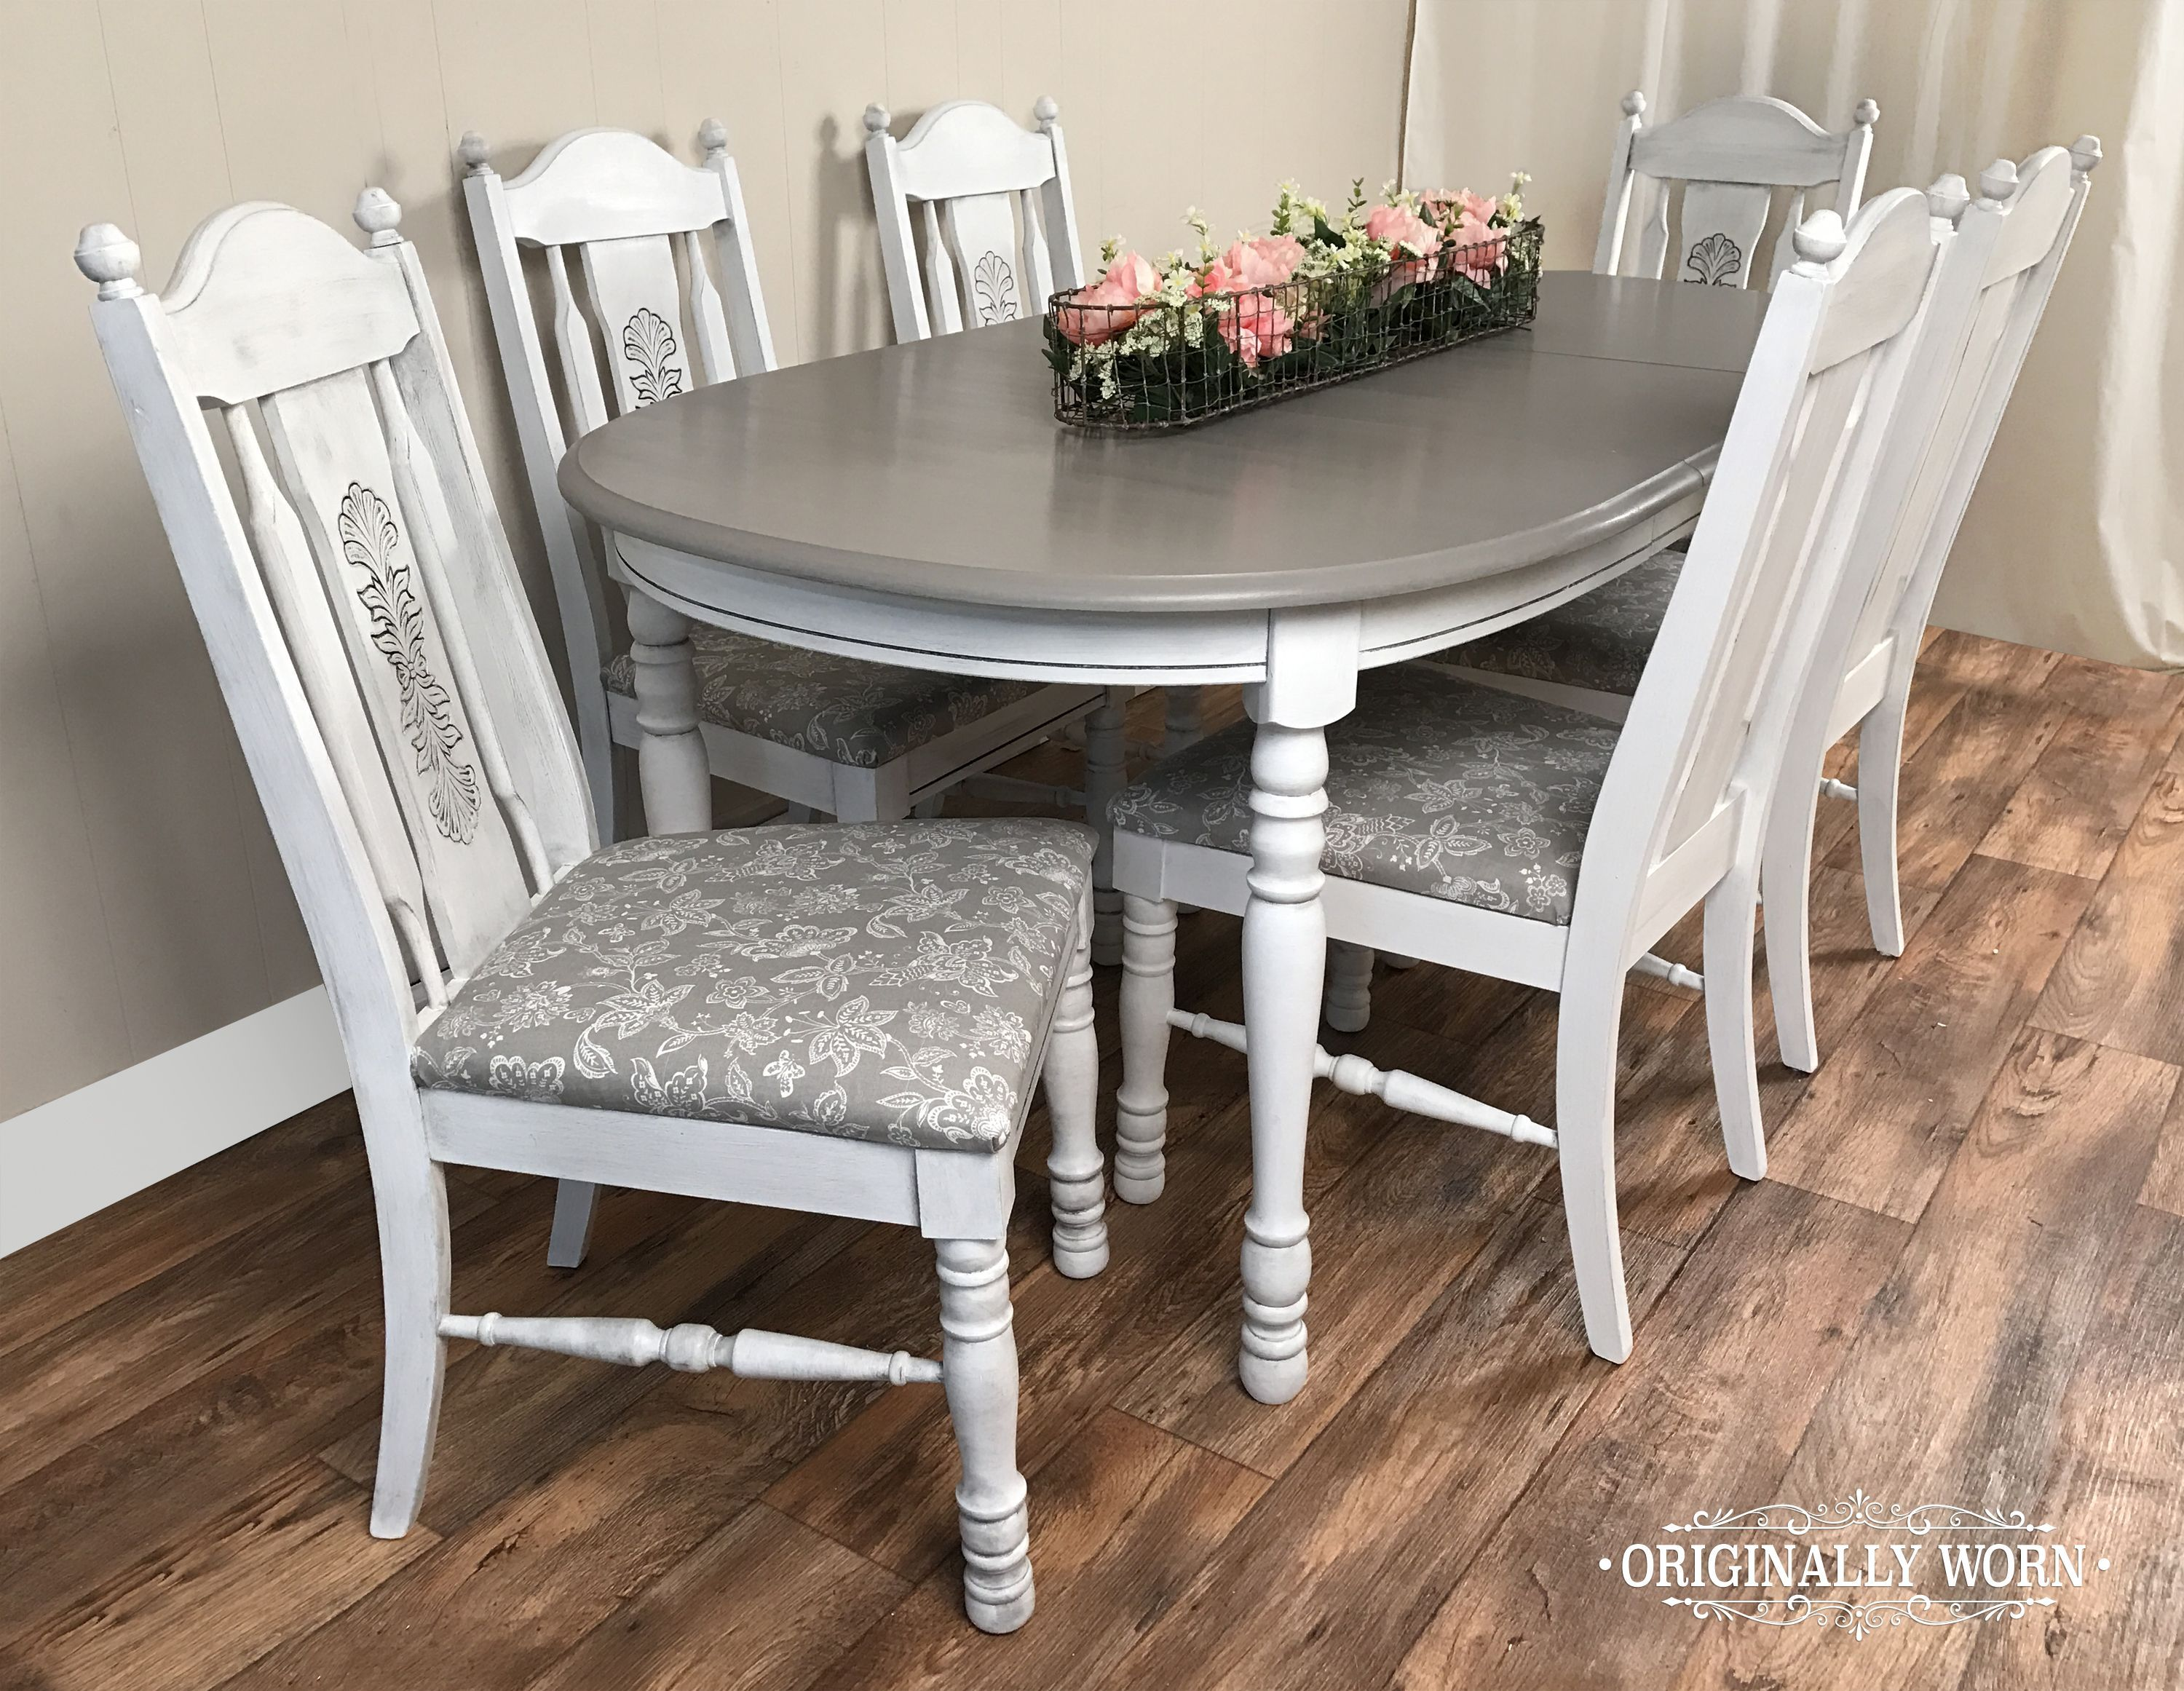 7 Piece Oval Dining Set In Annie Sloan Chalk Paint In Pure